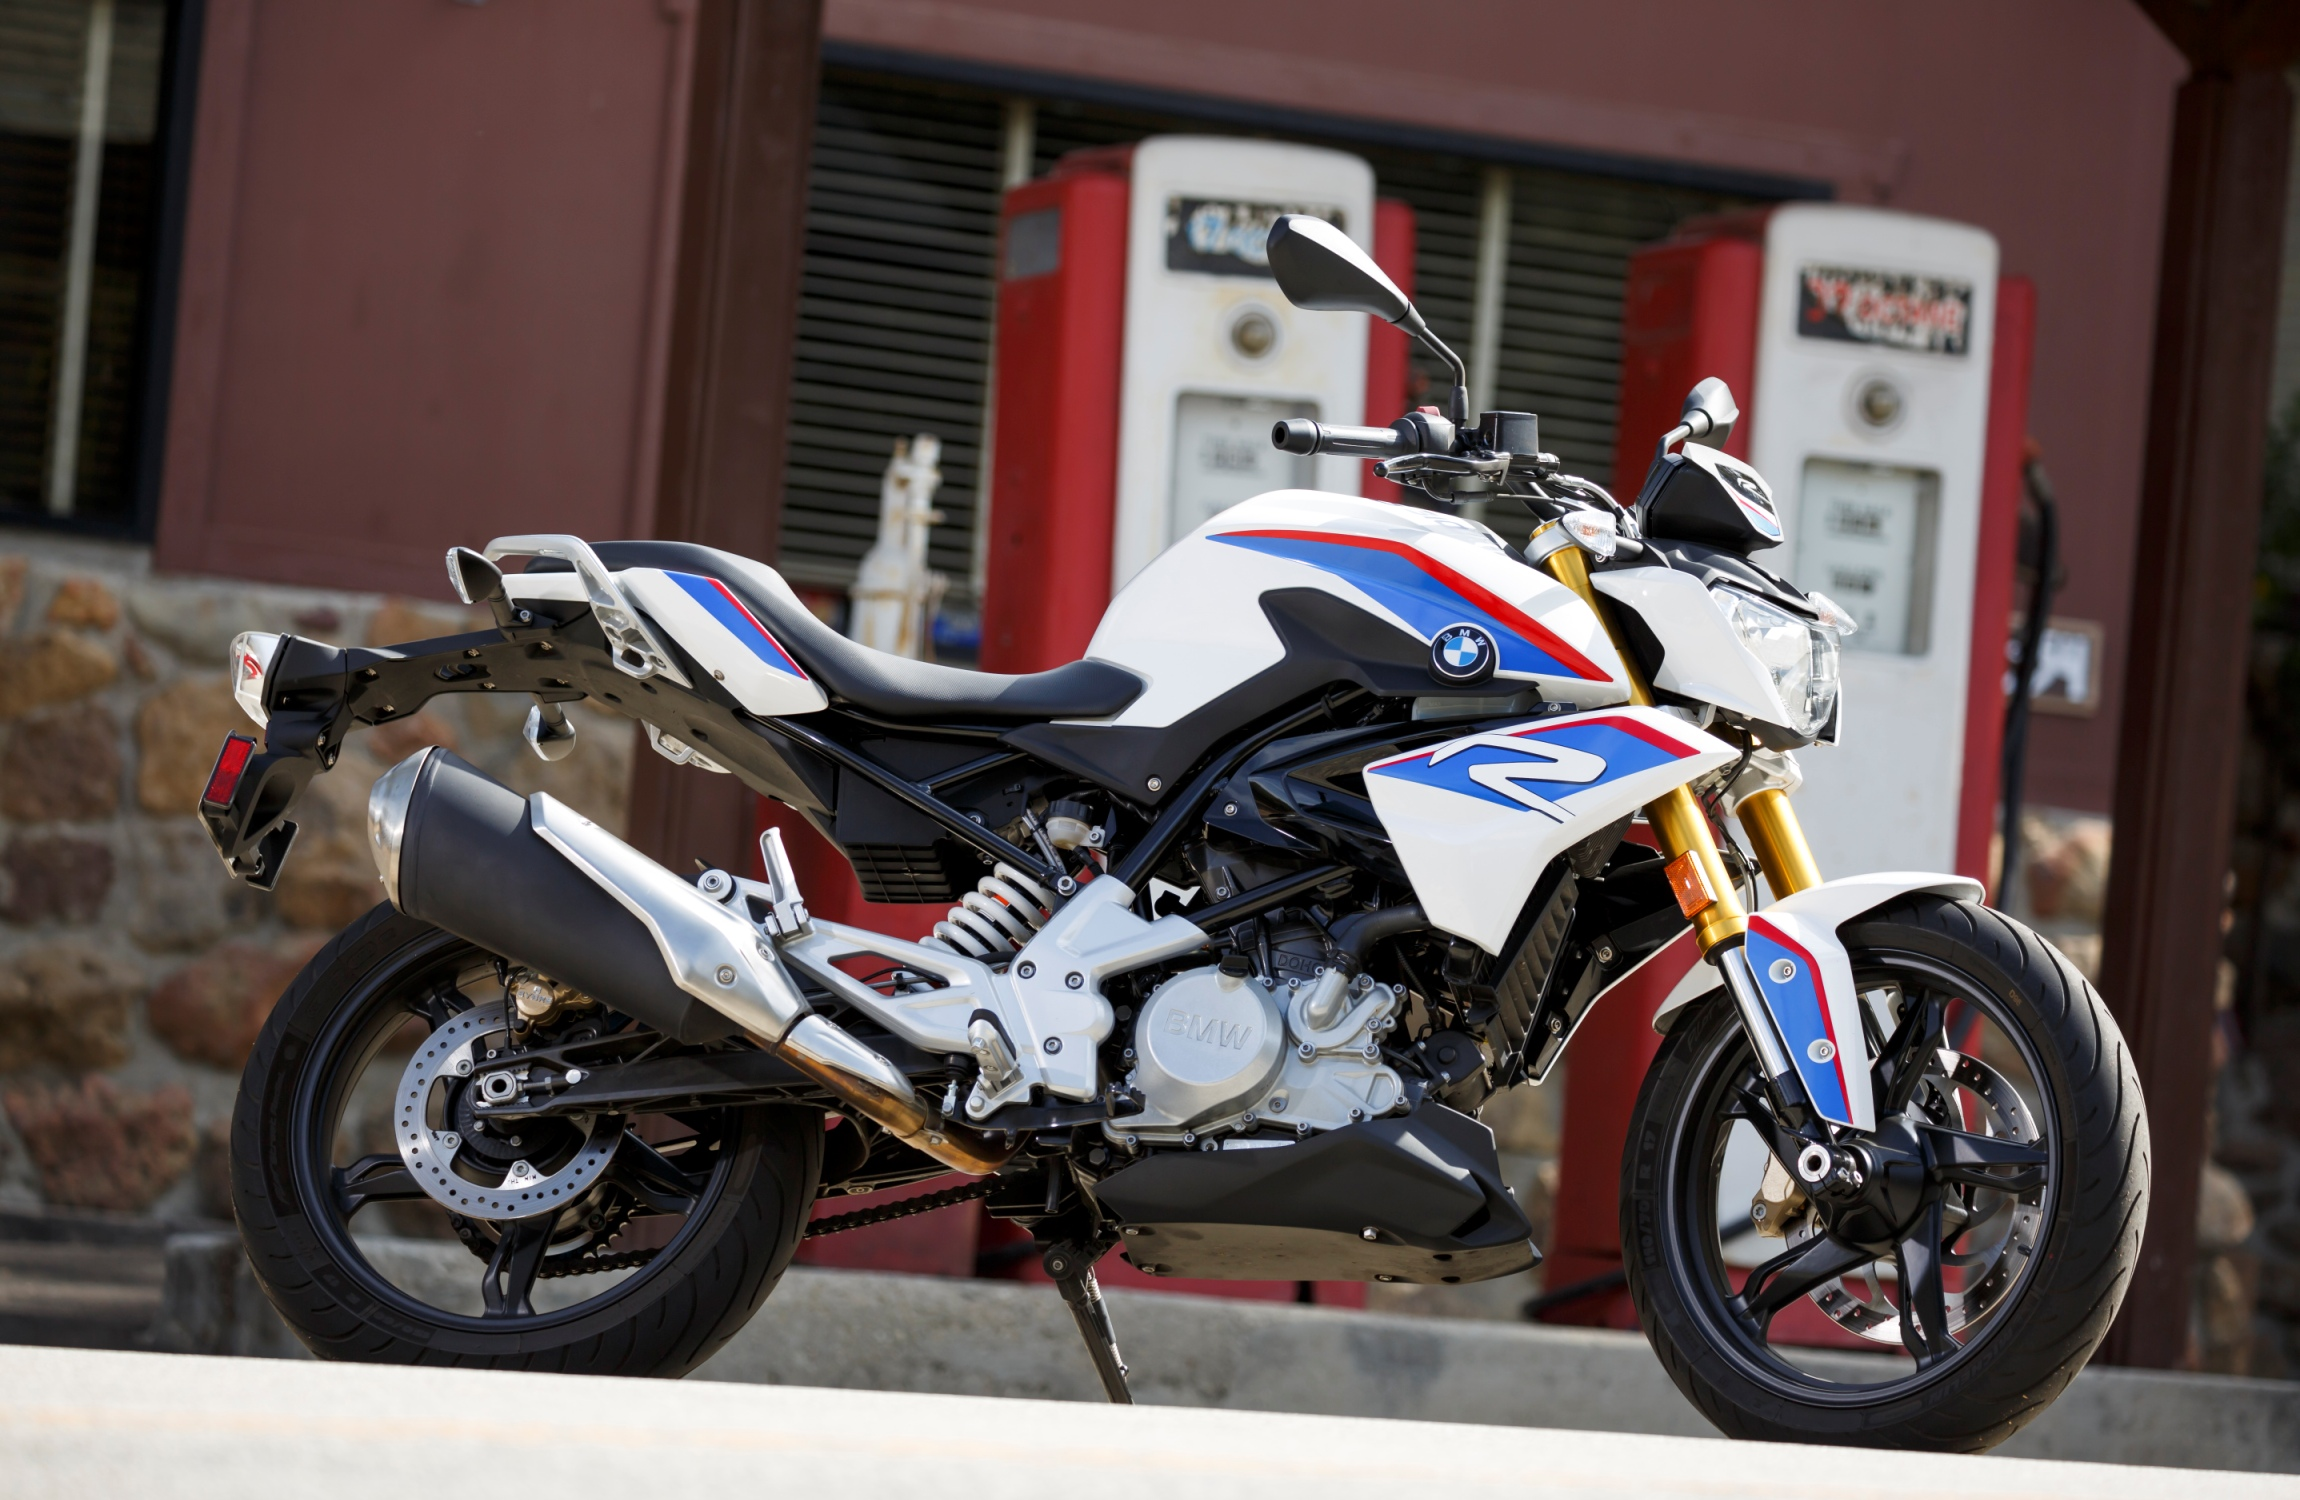 BMW G 310 R at the Rock Store.